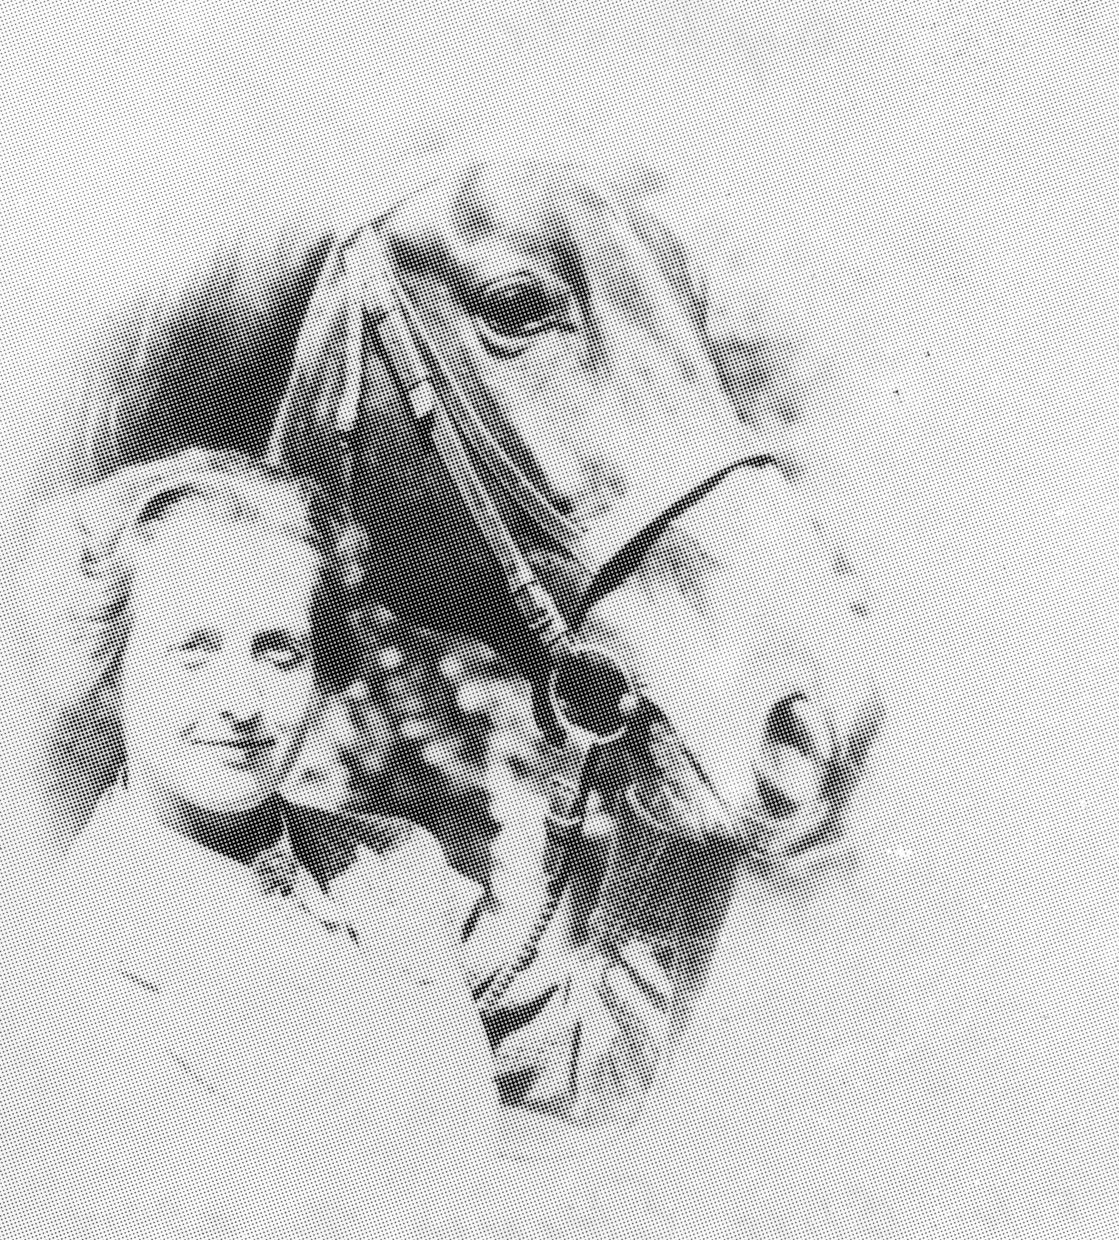 Pictured Eleanor Bliss. Tread of Pioneers Museum courtesy.